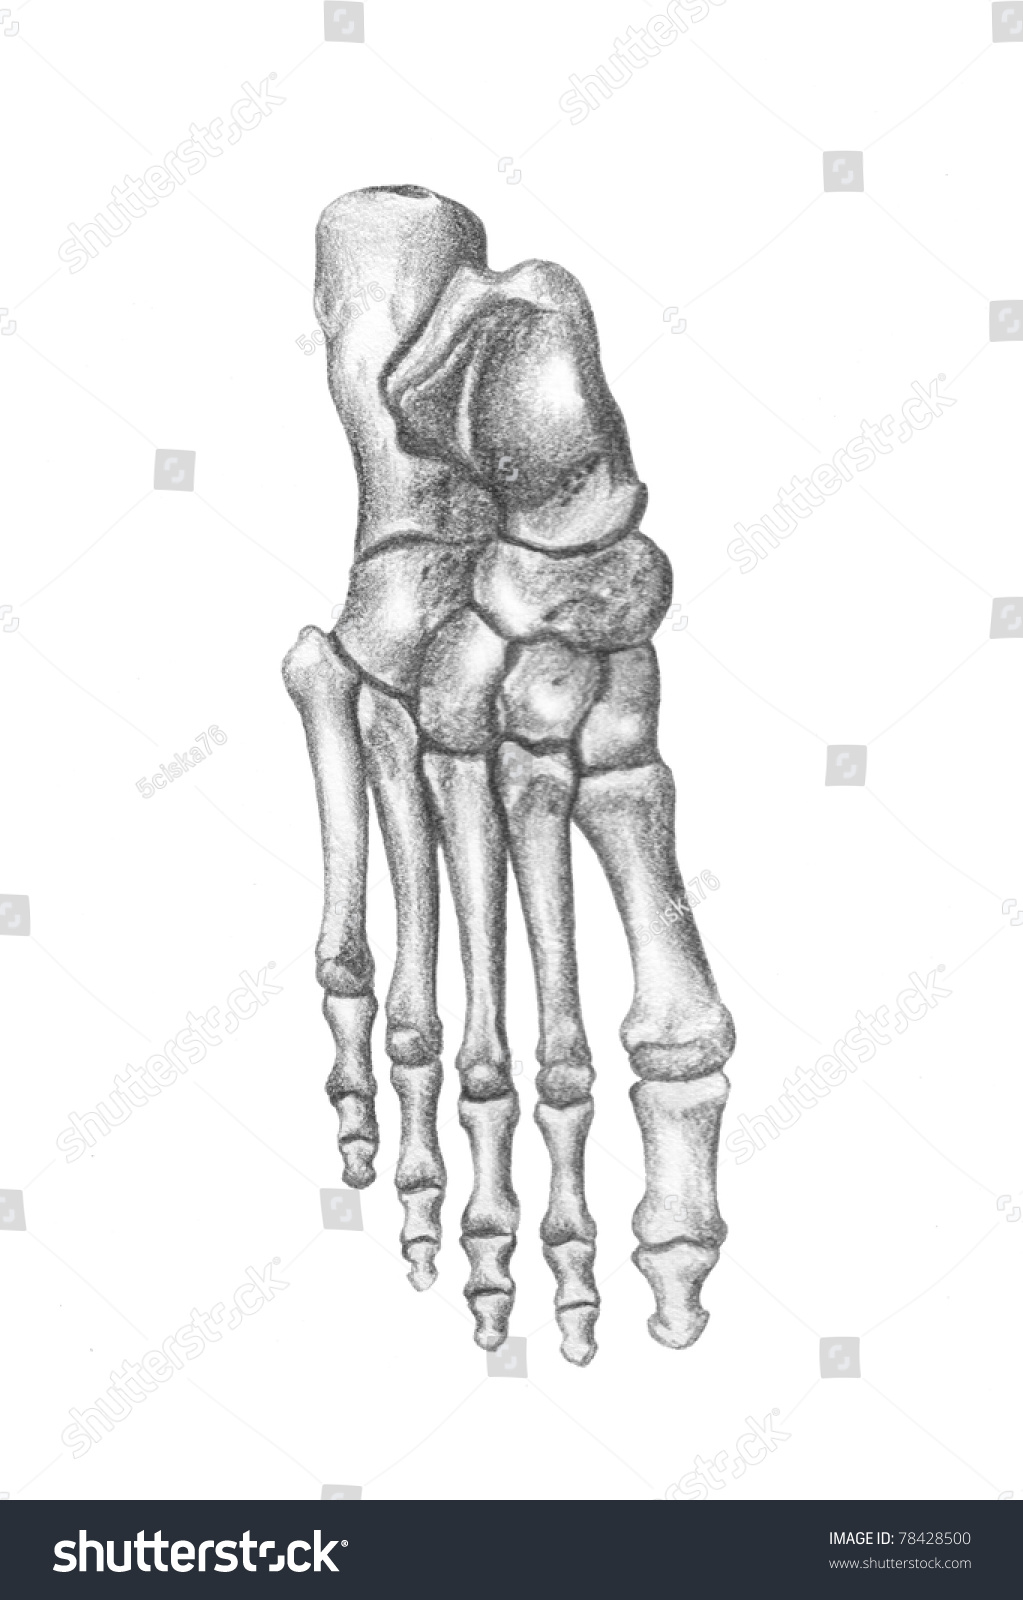 Human Anatomy Bones Foot Stock Illustration 78428500 - Shutterstock